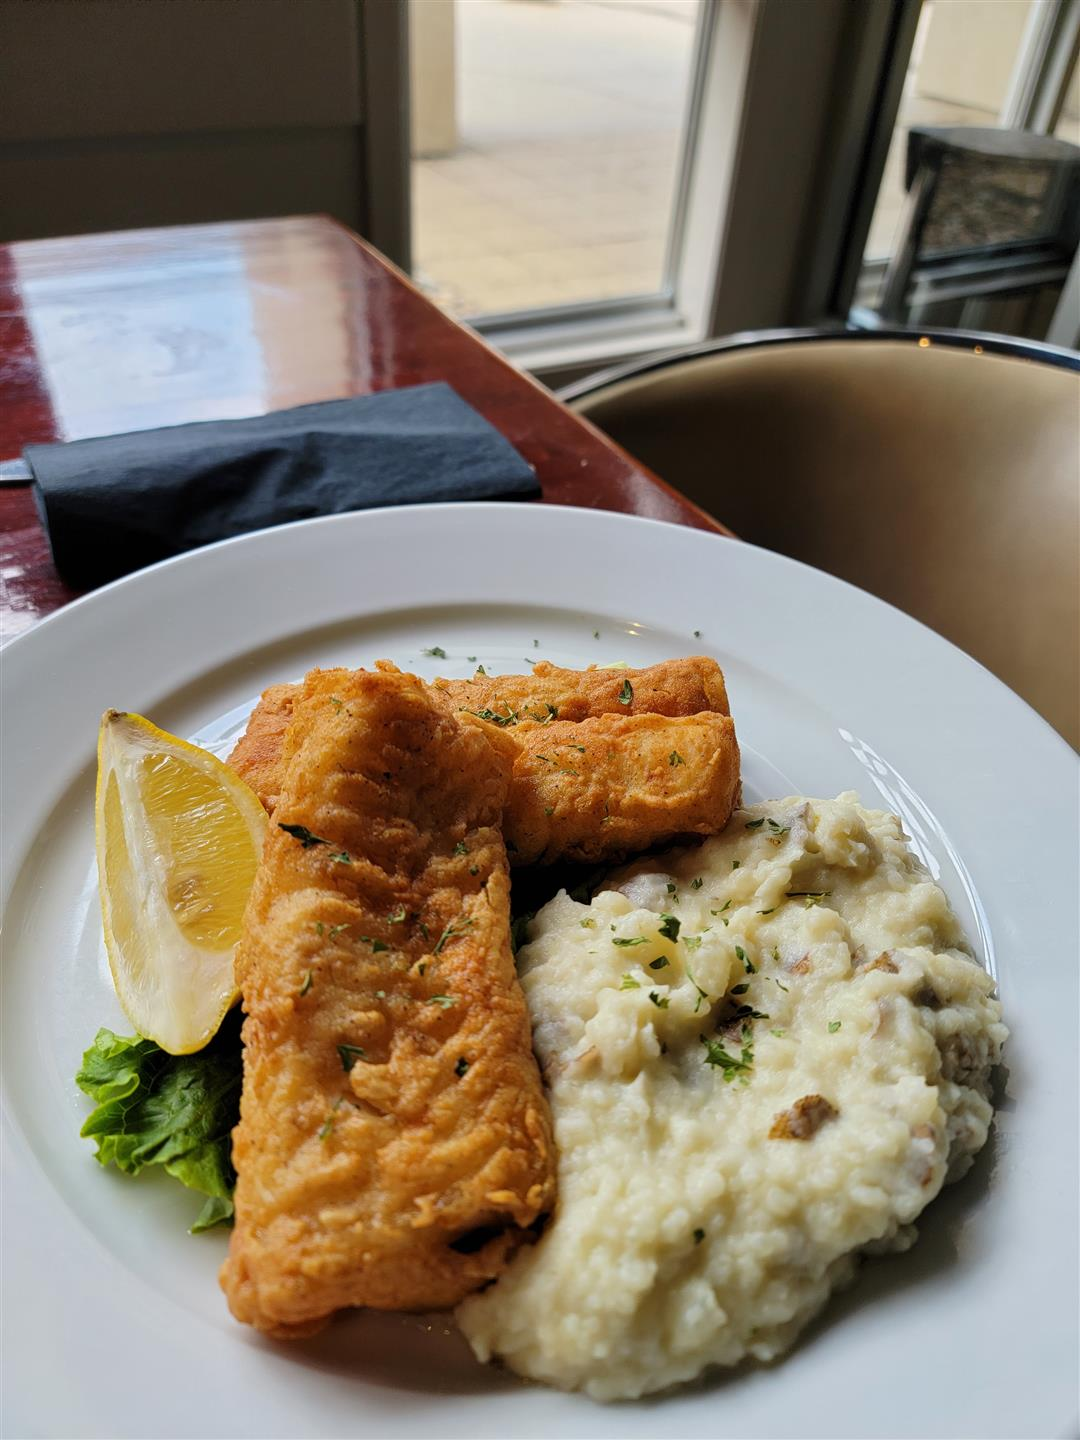 Cod Dinner - two pieces of fried cod with a side of mashed potatoes and a lemon garnish